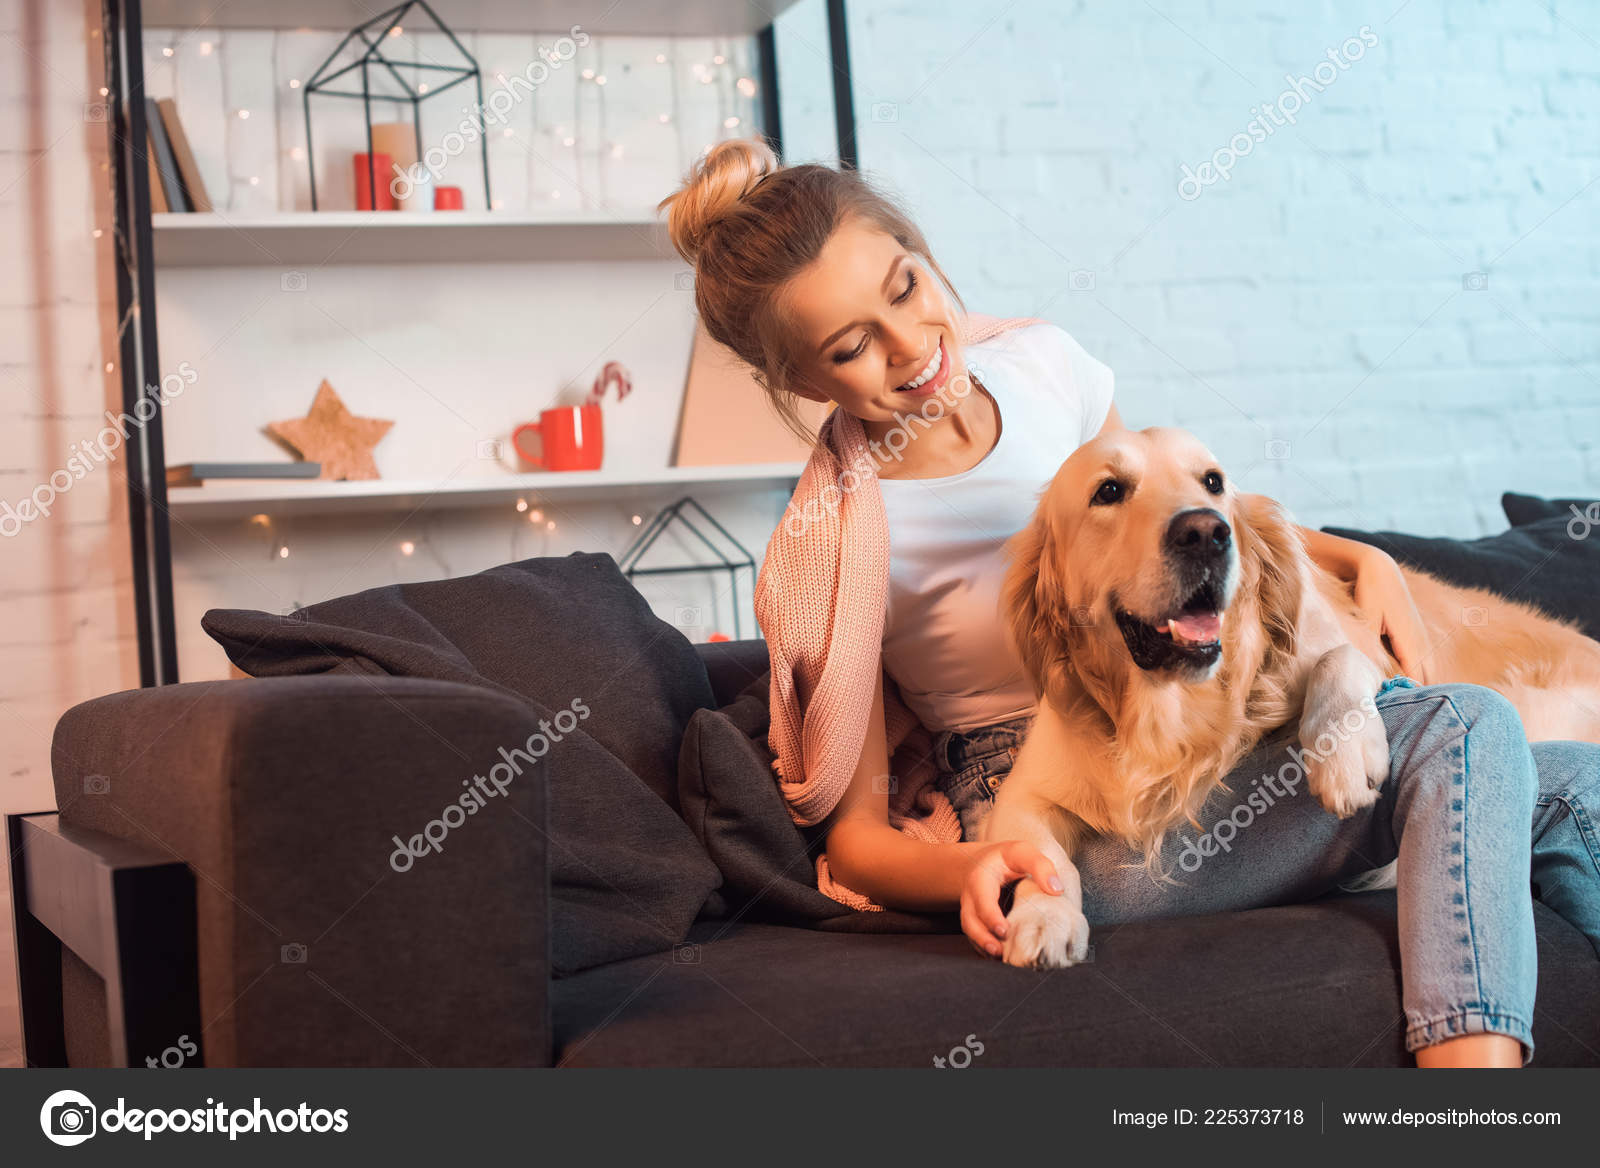 Beautiful Smiling Young Blonde Woman Sitting Couch Hugging Golden